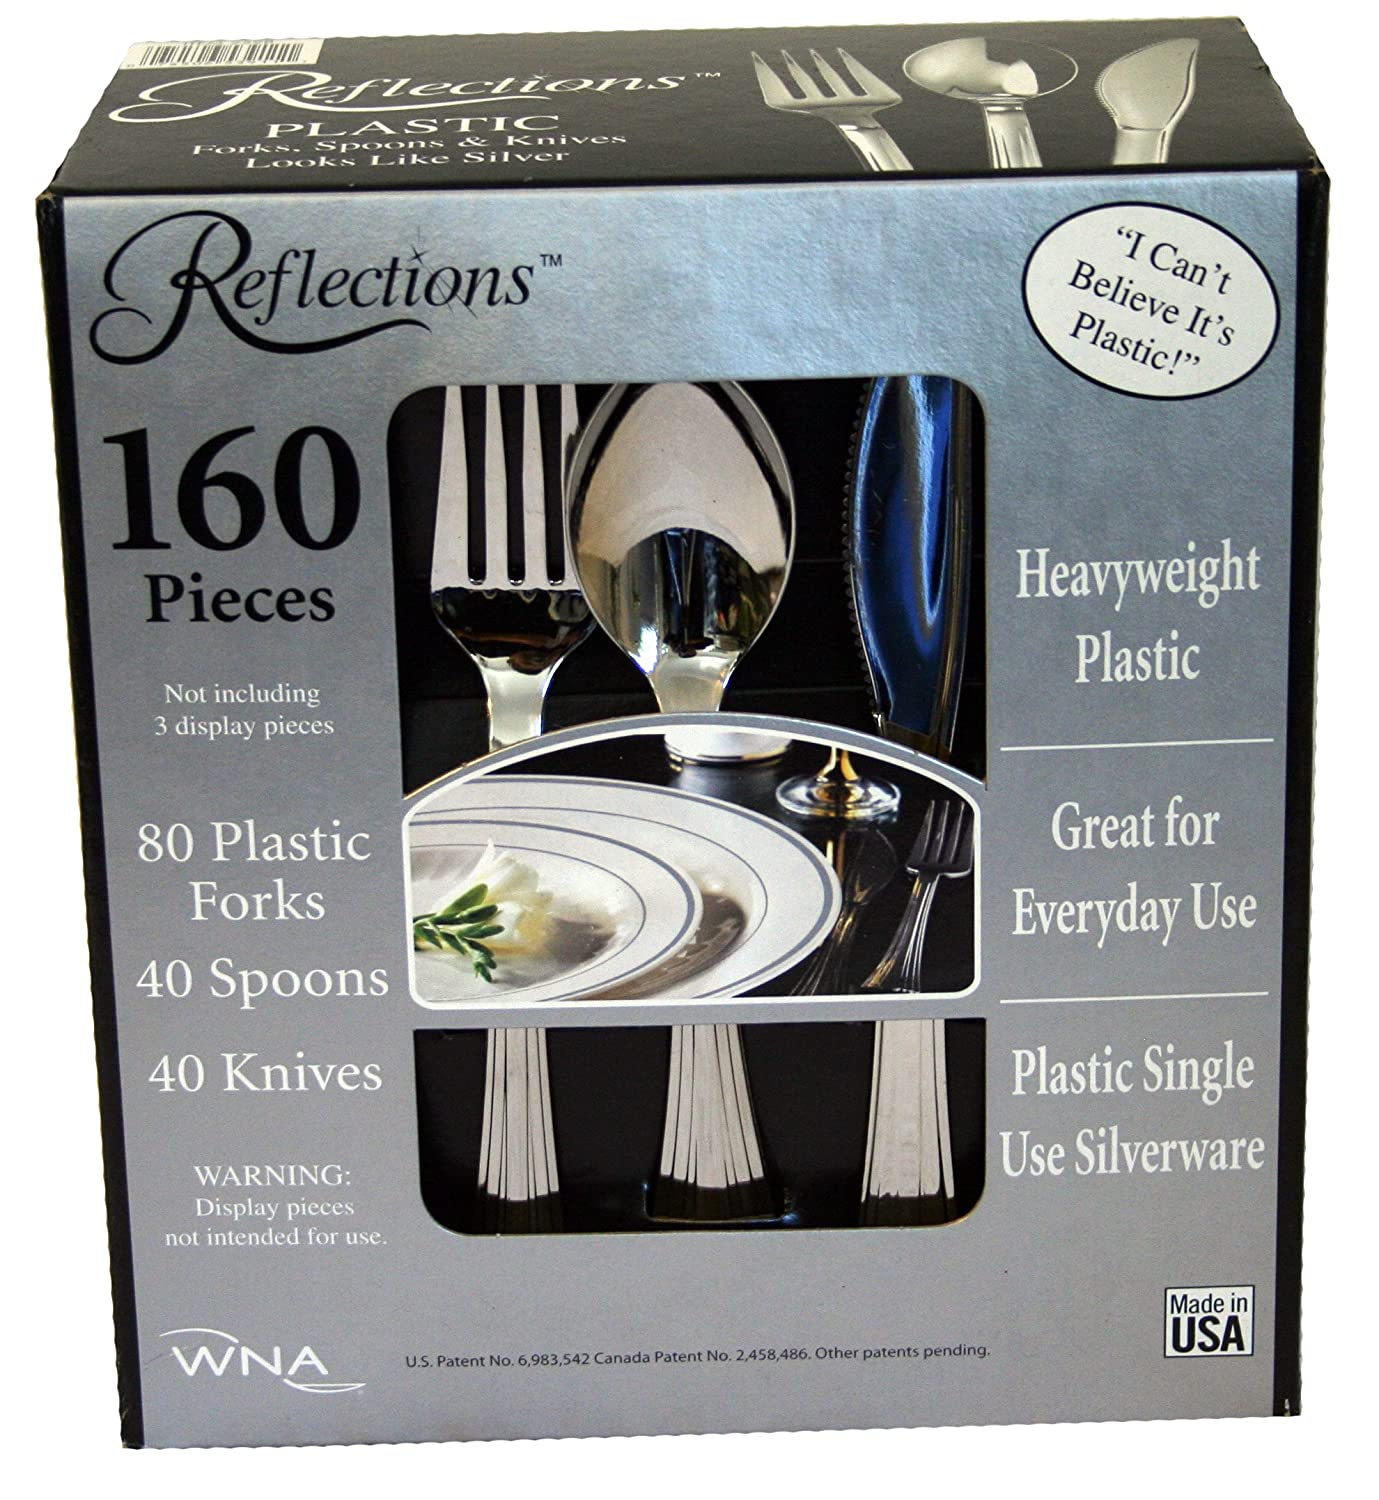 & Amazon.com | Reflections Plastic Silverware 160 Pieces: Flatware Sets